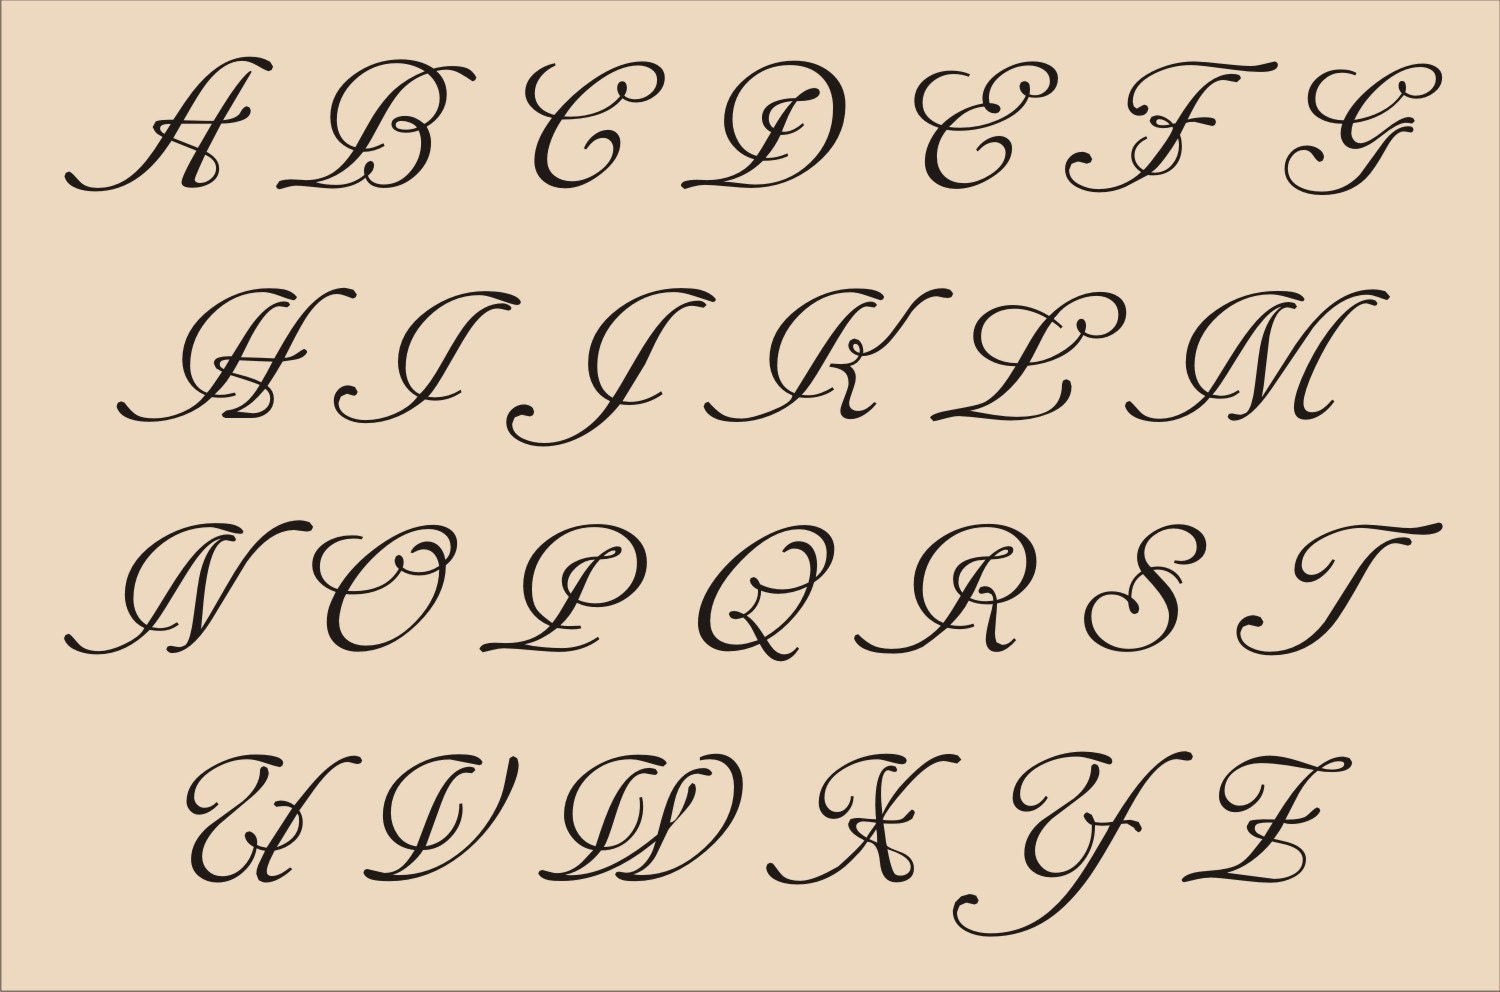 fancy styles of writing alphabets in cursive